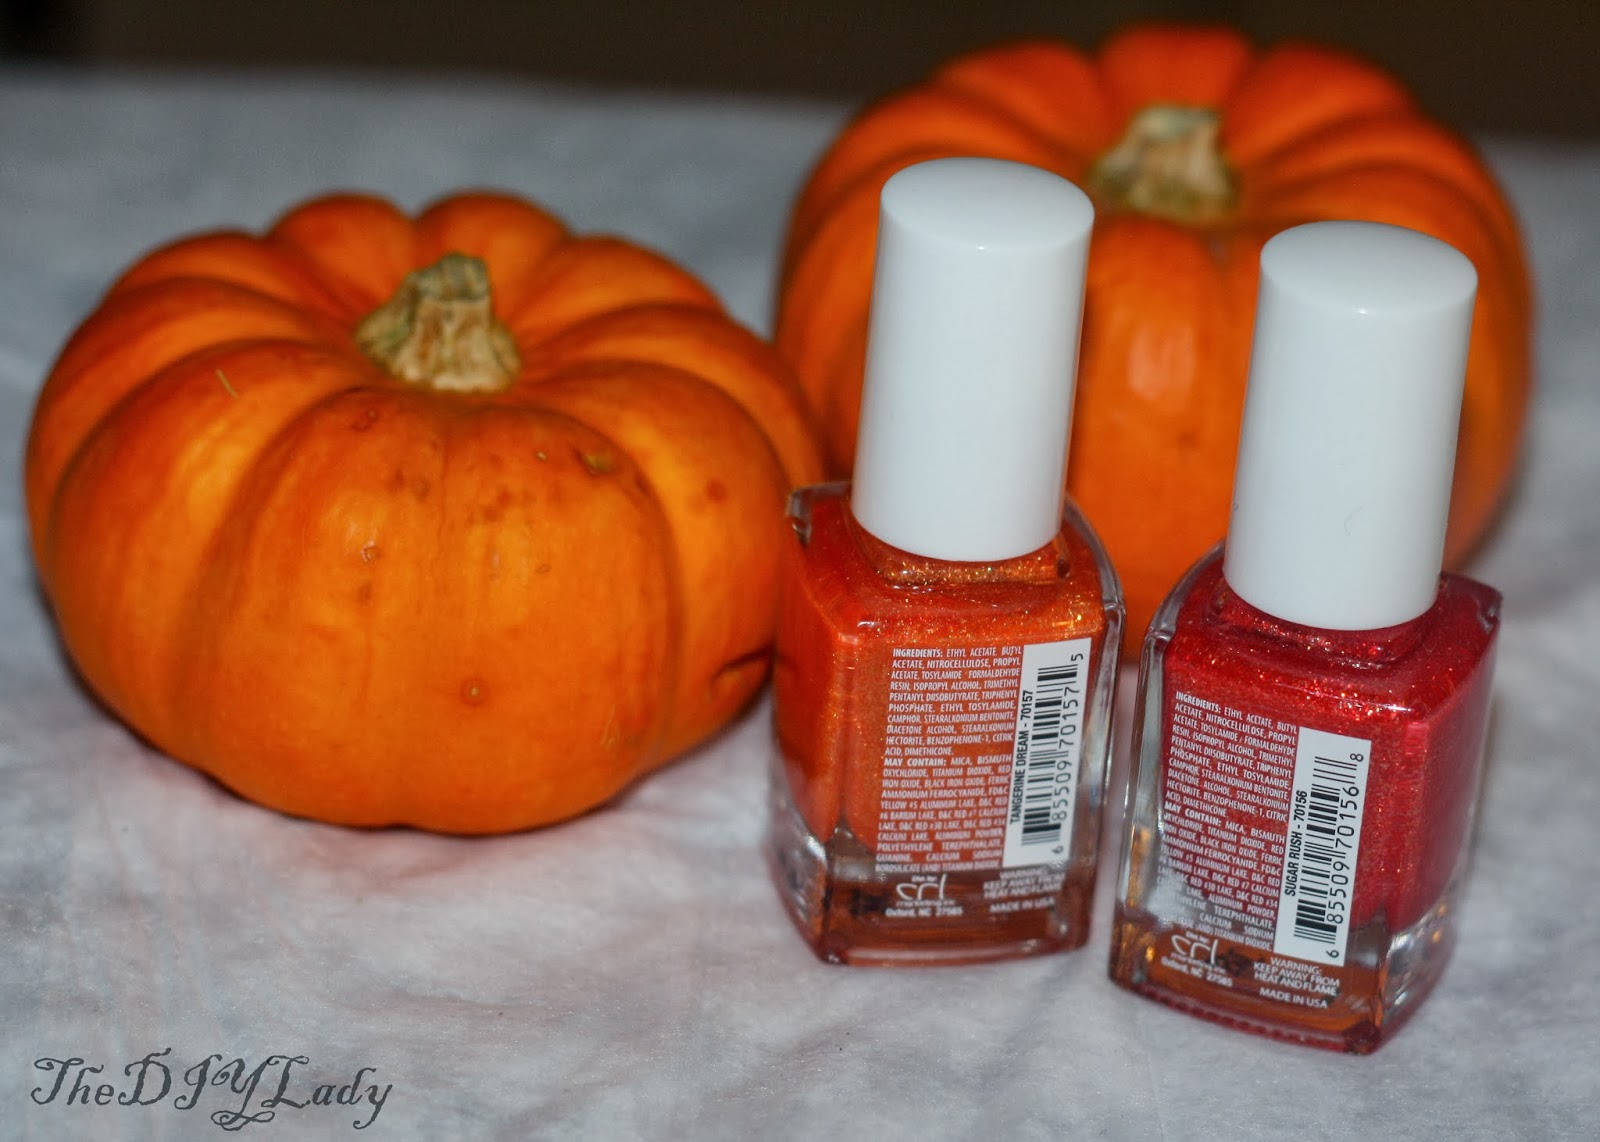 The Do It Yourself Lady: Orange Nail Polish Ideas for Halloween...